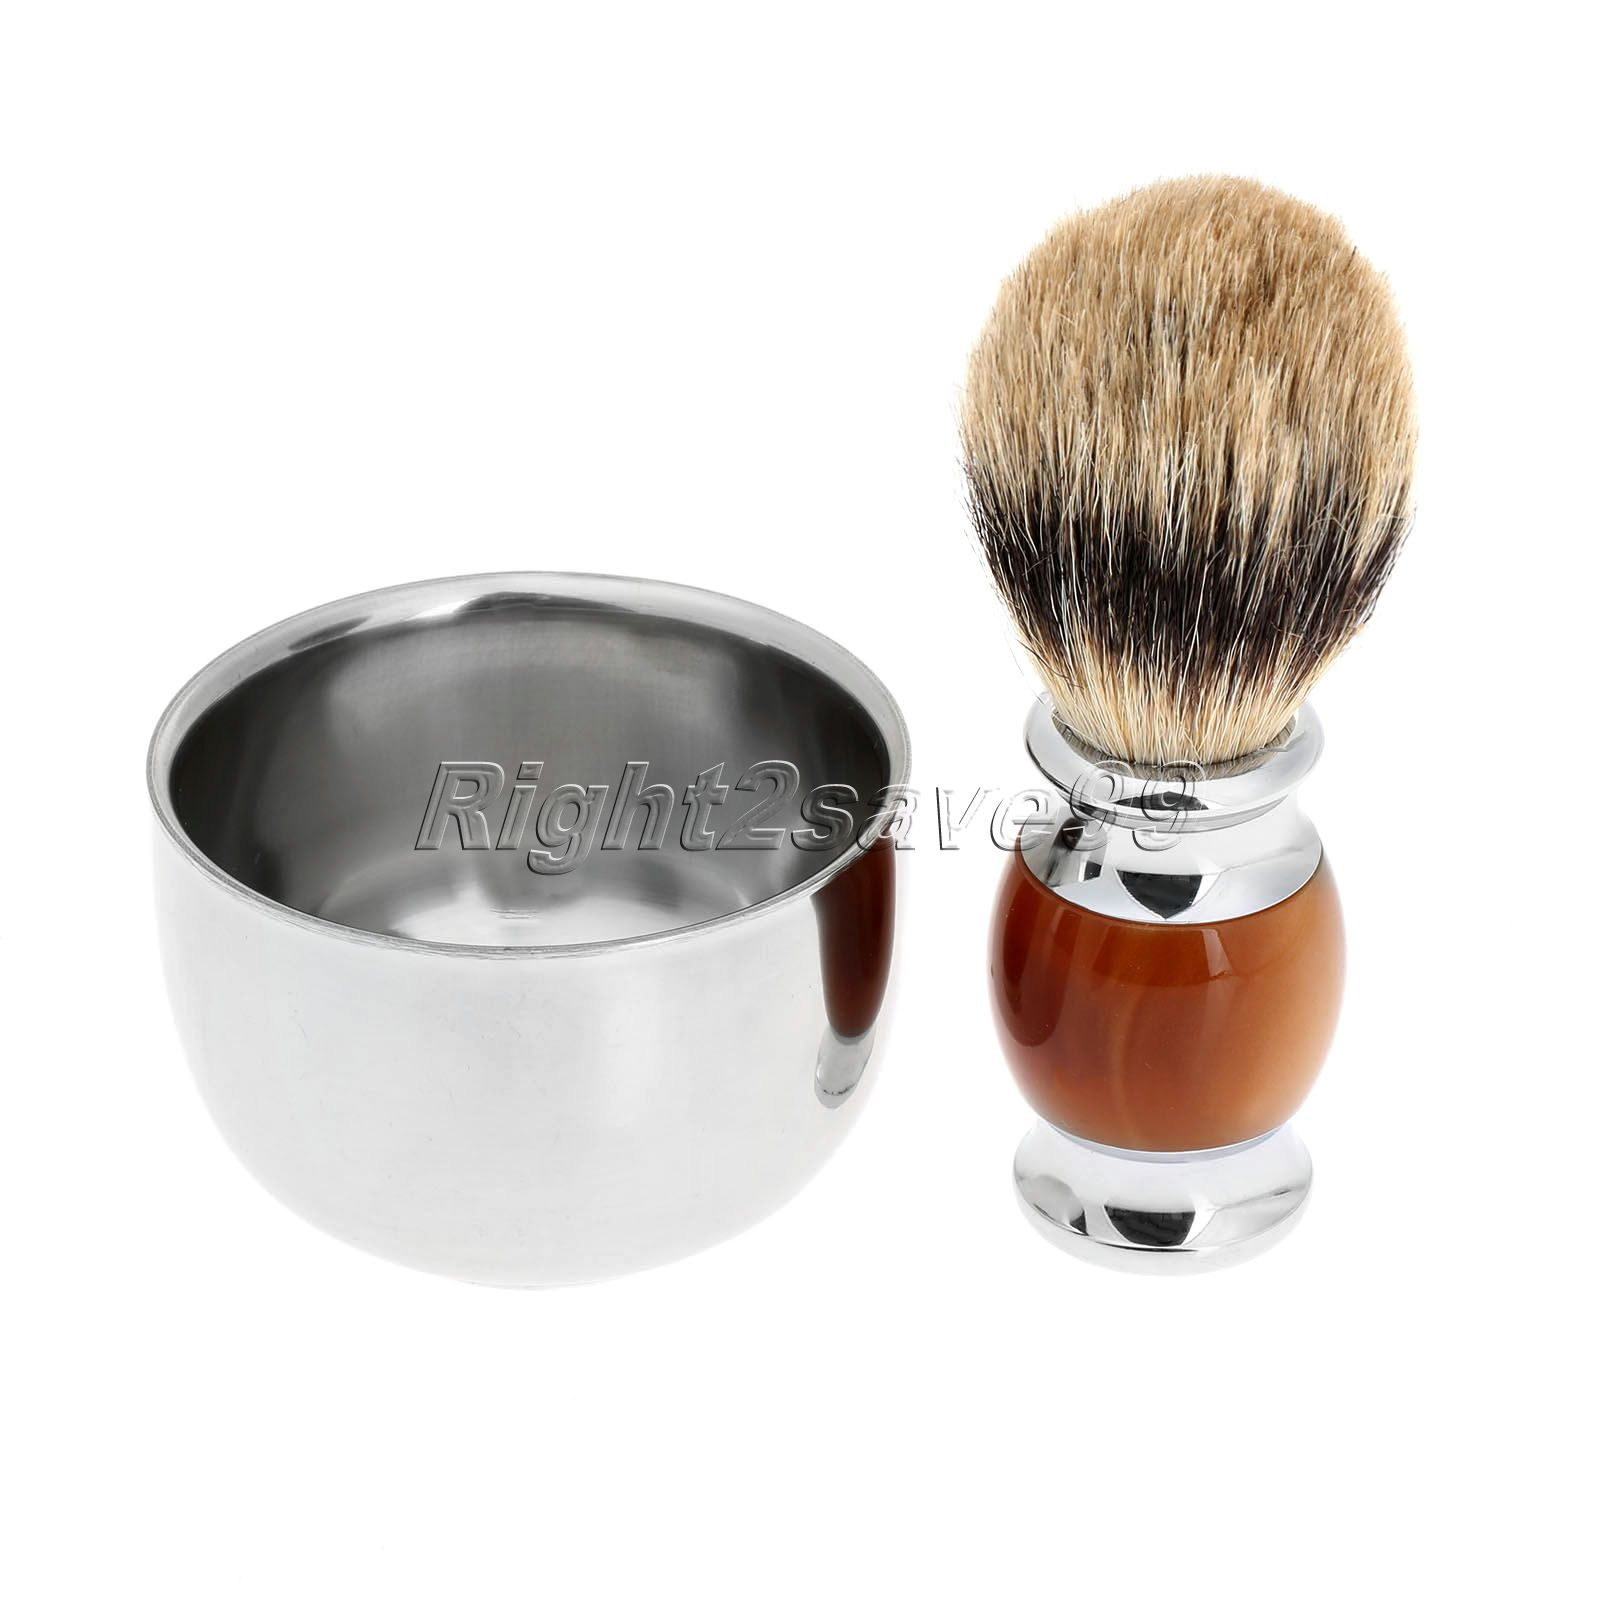 New High Quality Pure Badger Shaving Brush Resin Handle